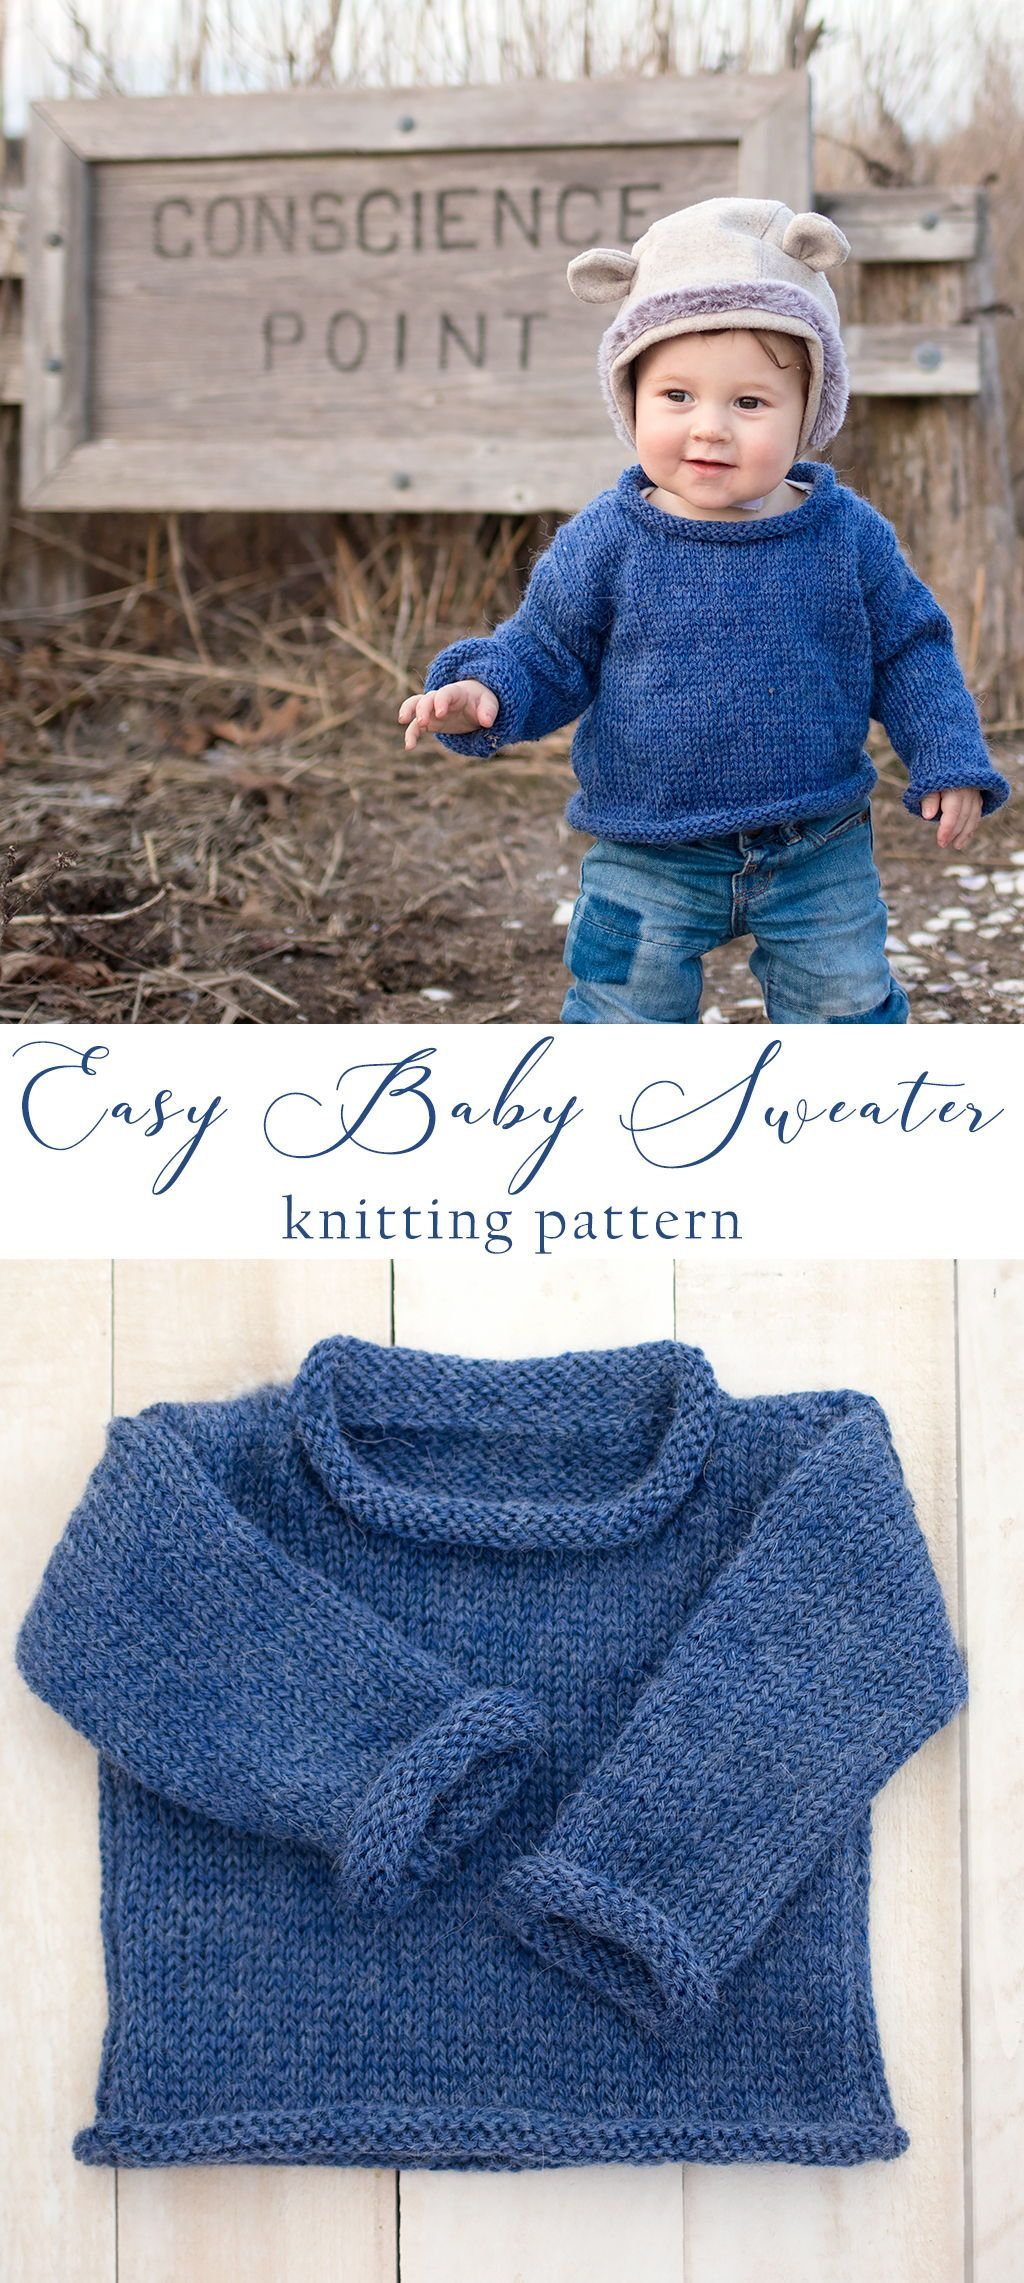 Easy Baby Sweater Knitting Pattern - Gina Michele